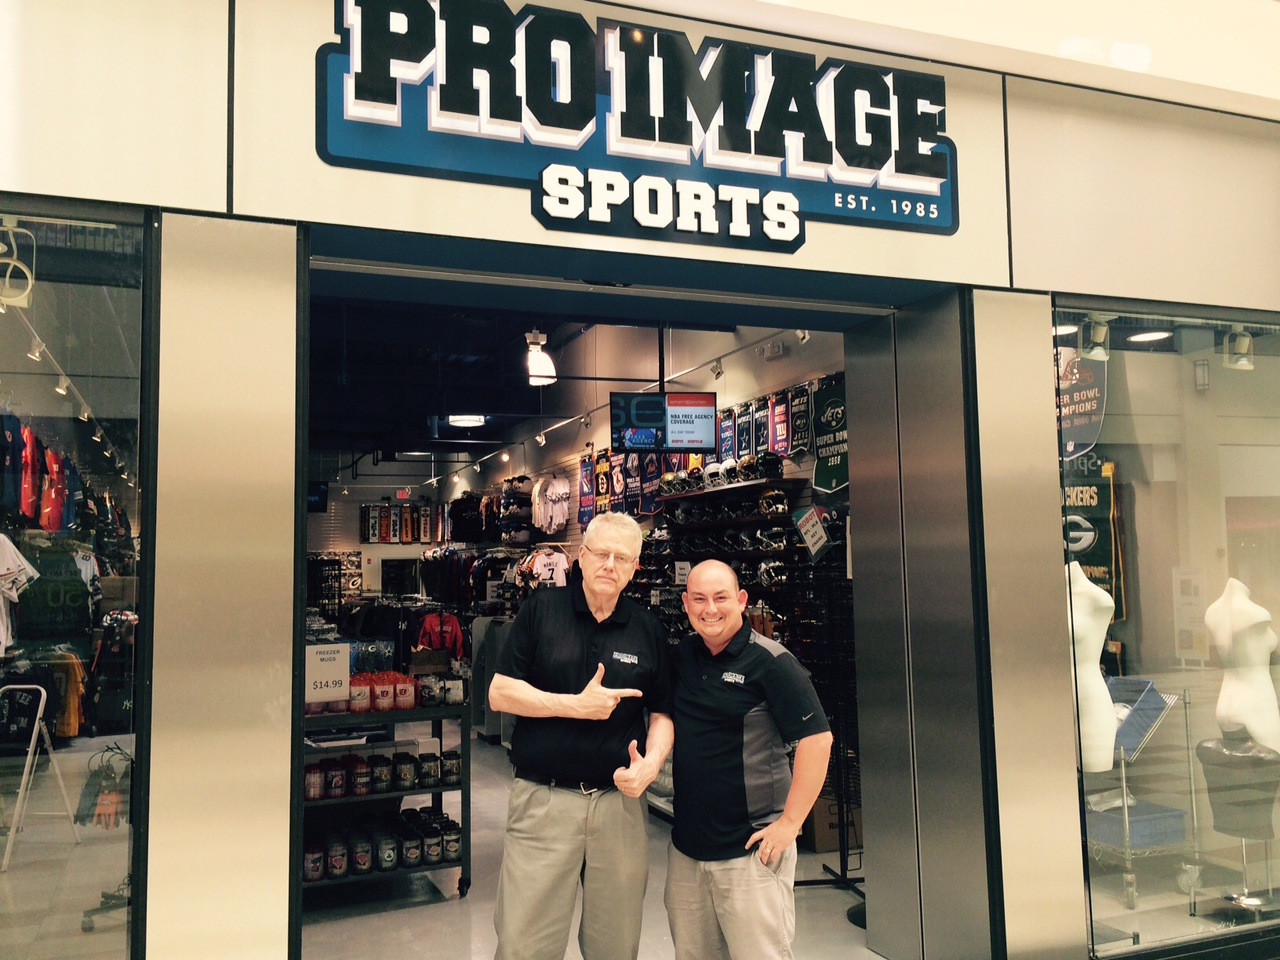 Longtime NY Store Owner Re-brands as Pro Image Sports